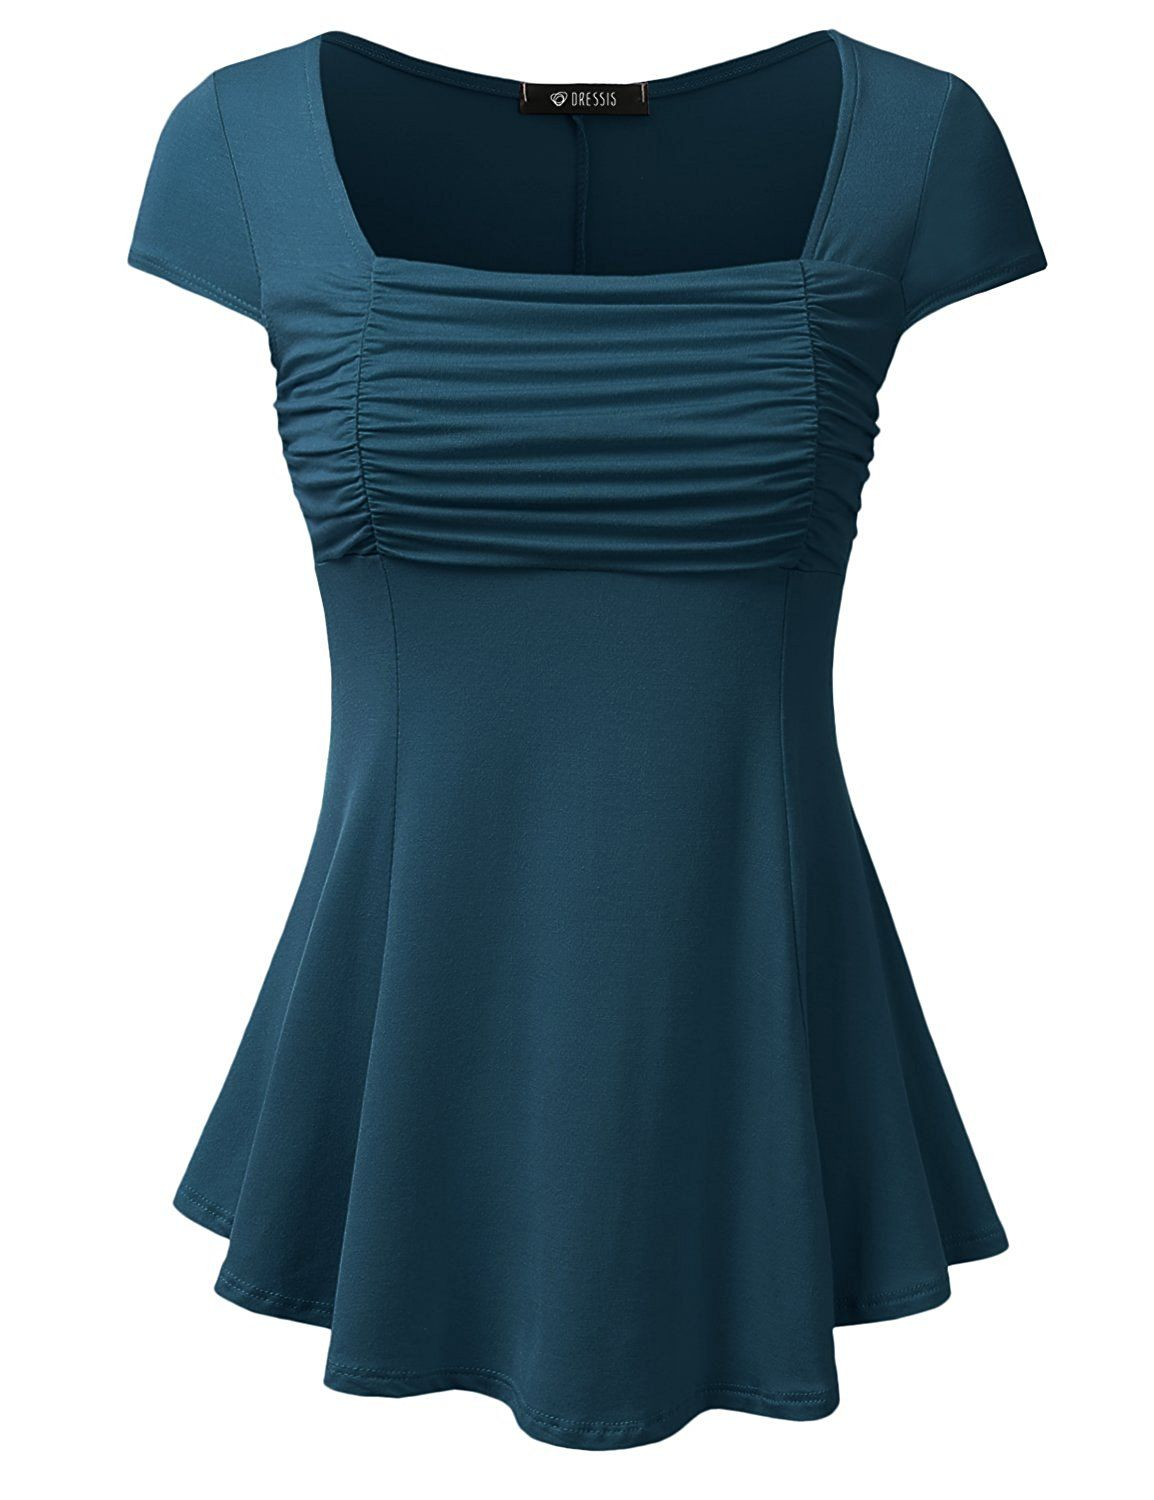 DRESSIS Womens Short Sleeve Front Shirring Flowy Top at Amazon